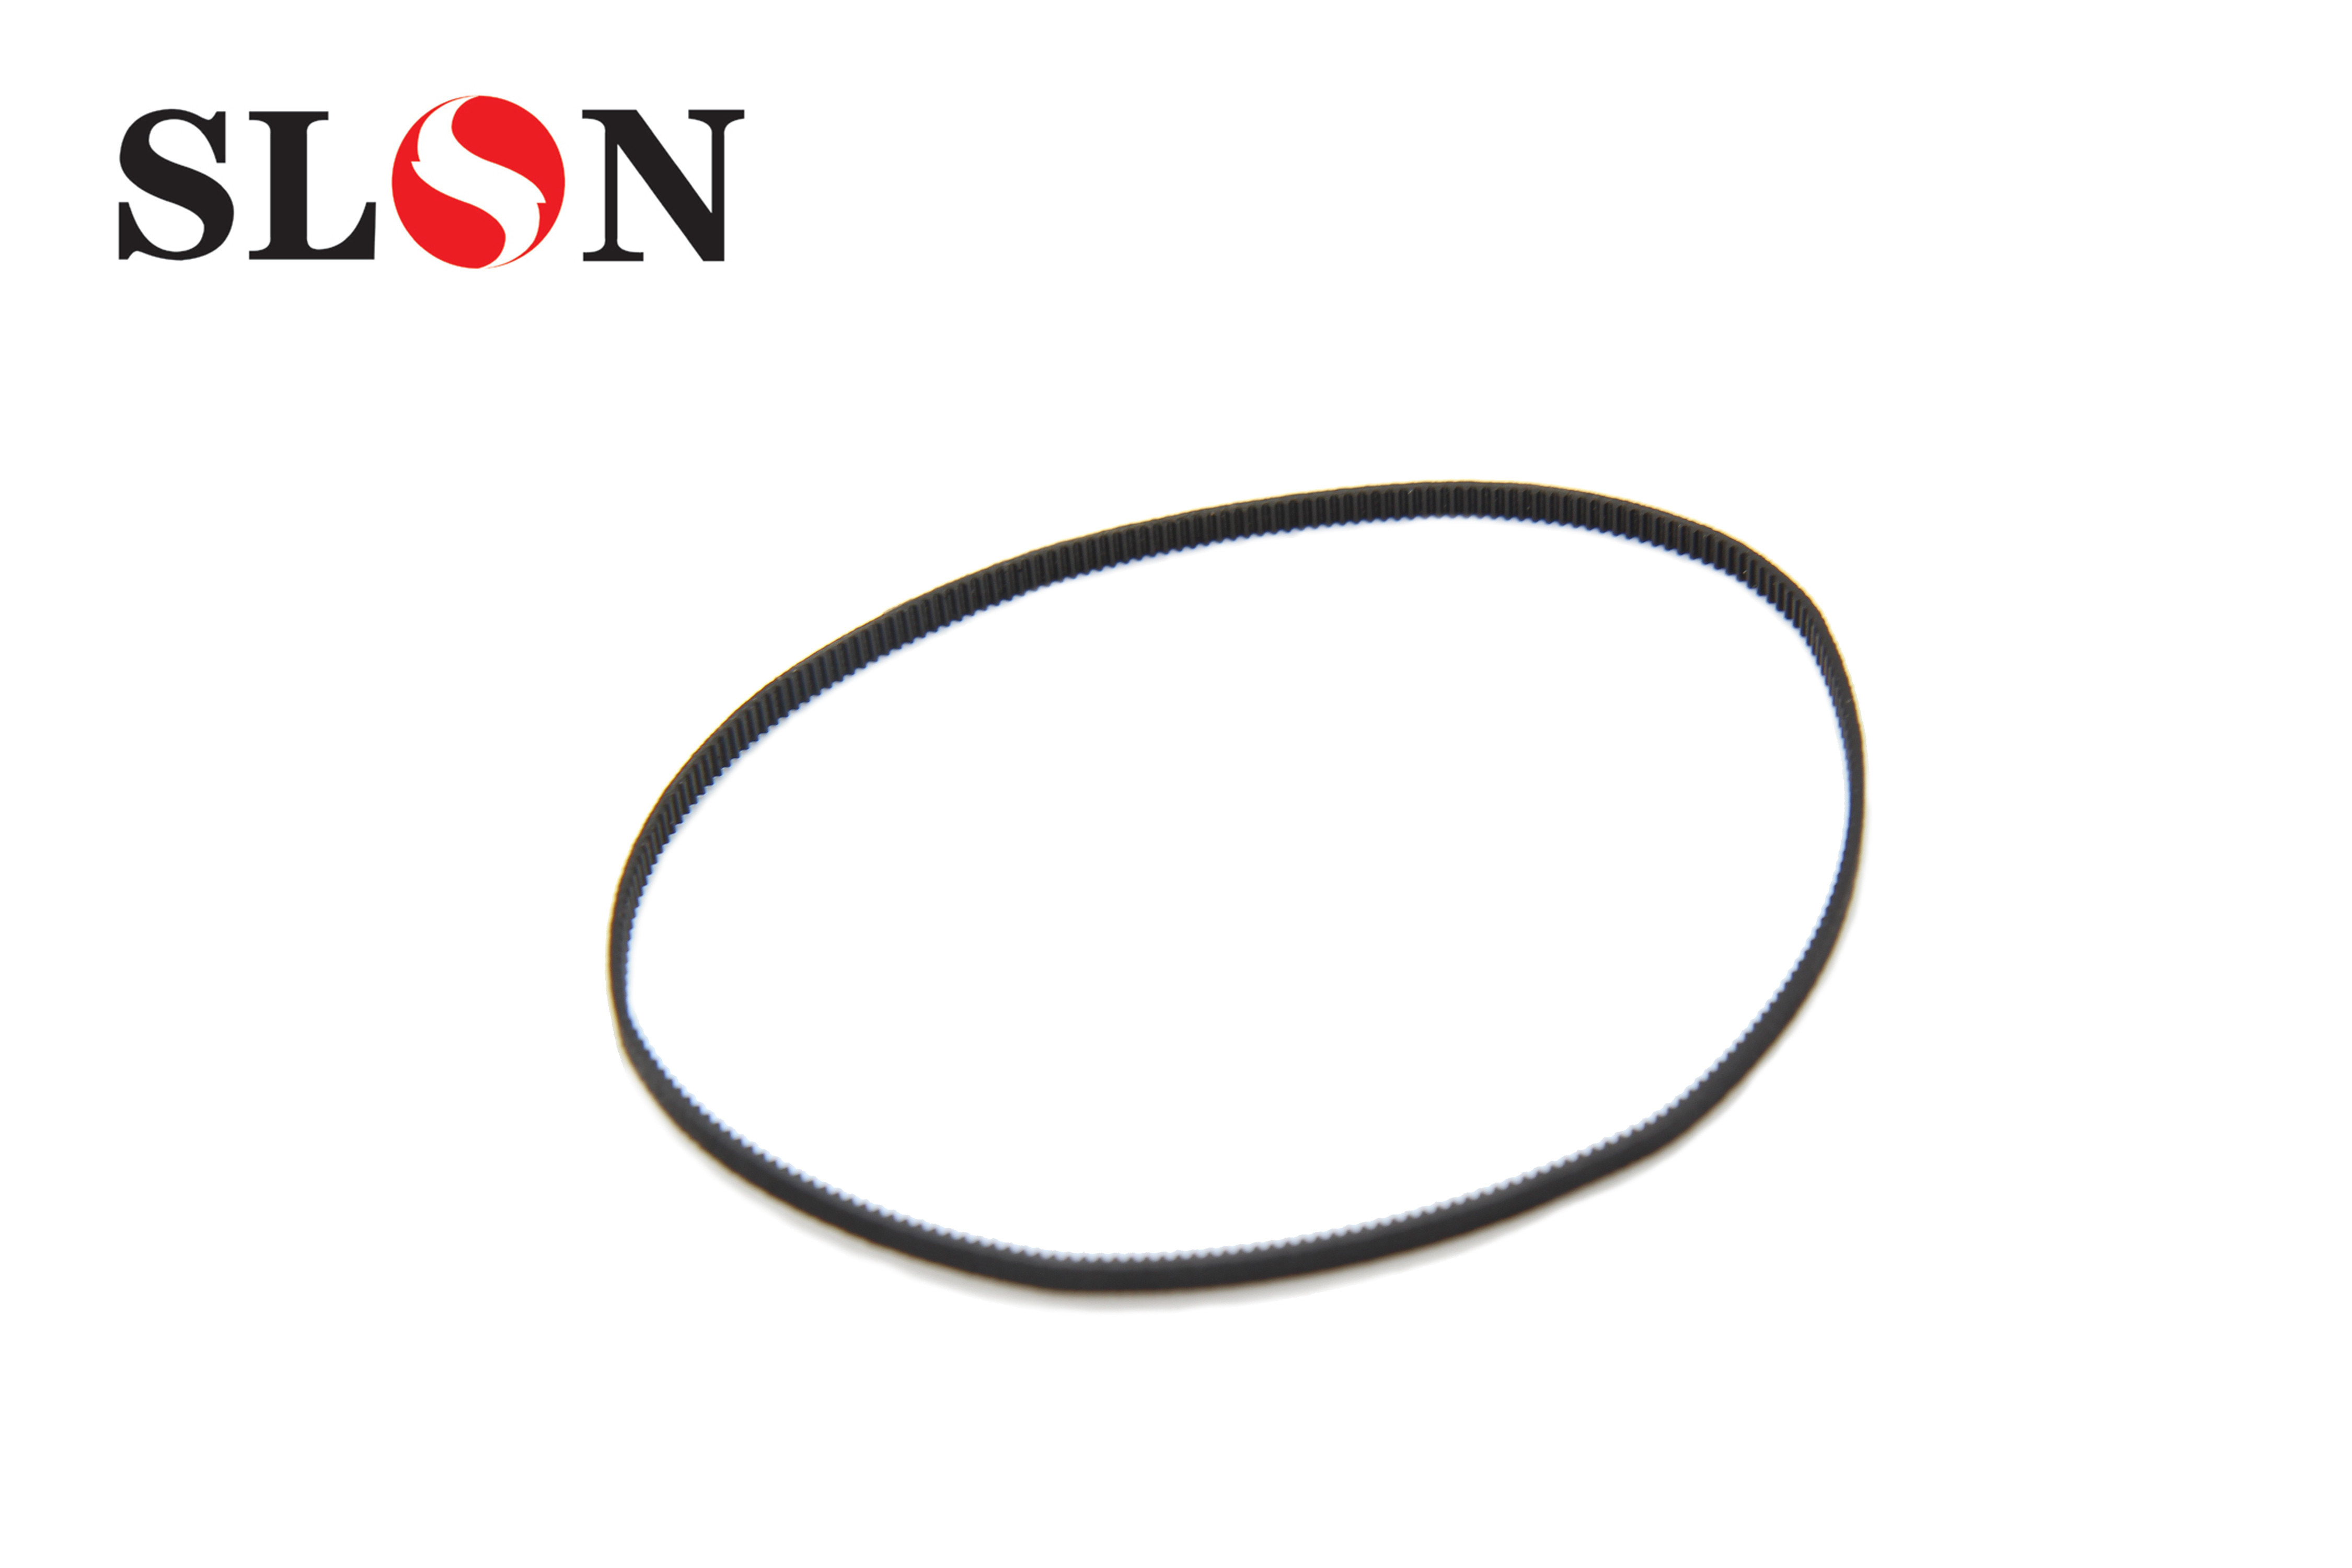 Paper Feed Drive Belt For HP Officejet Pro 6500 7000 7110